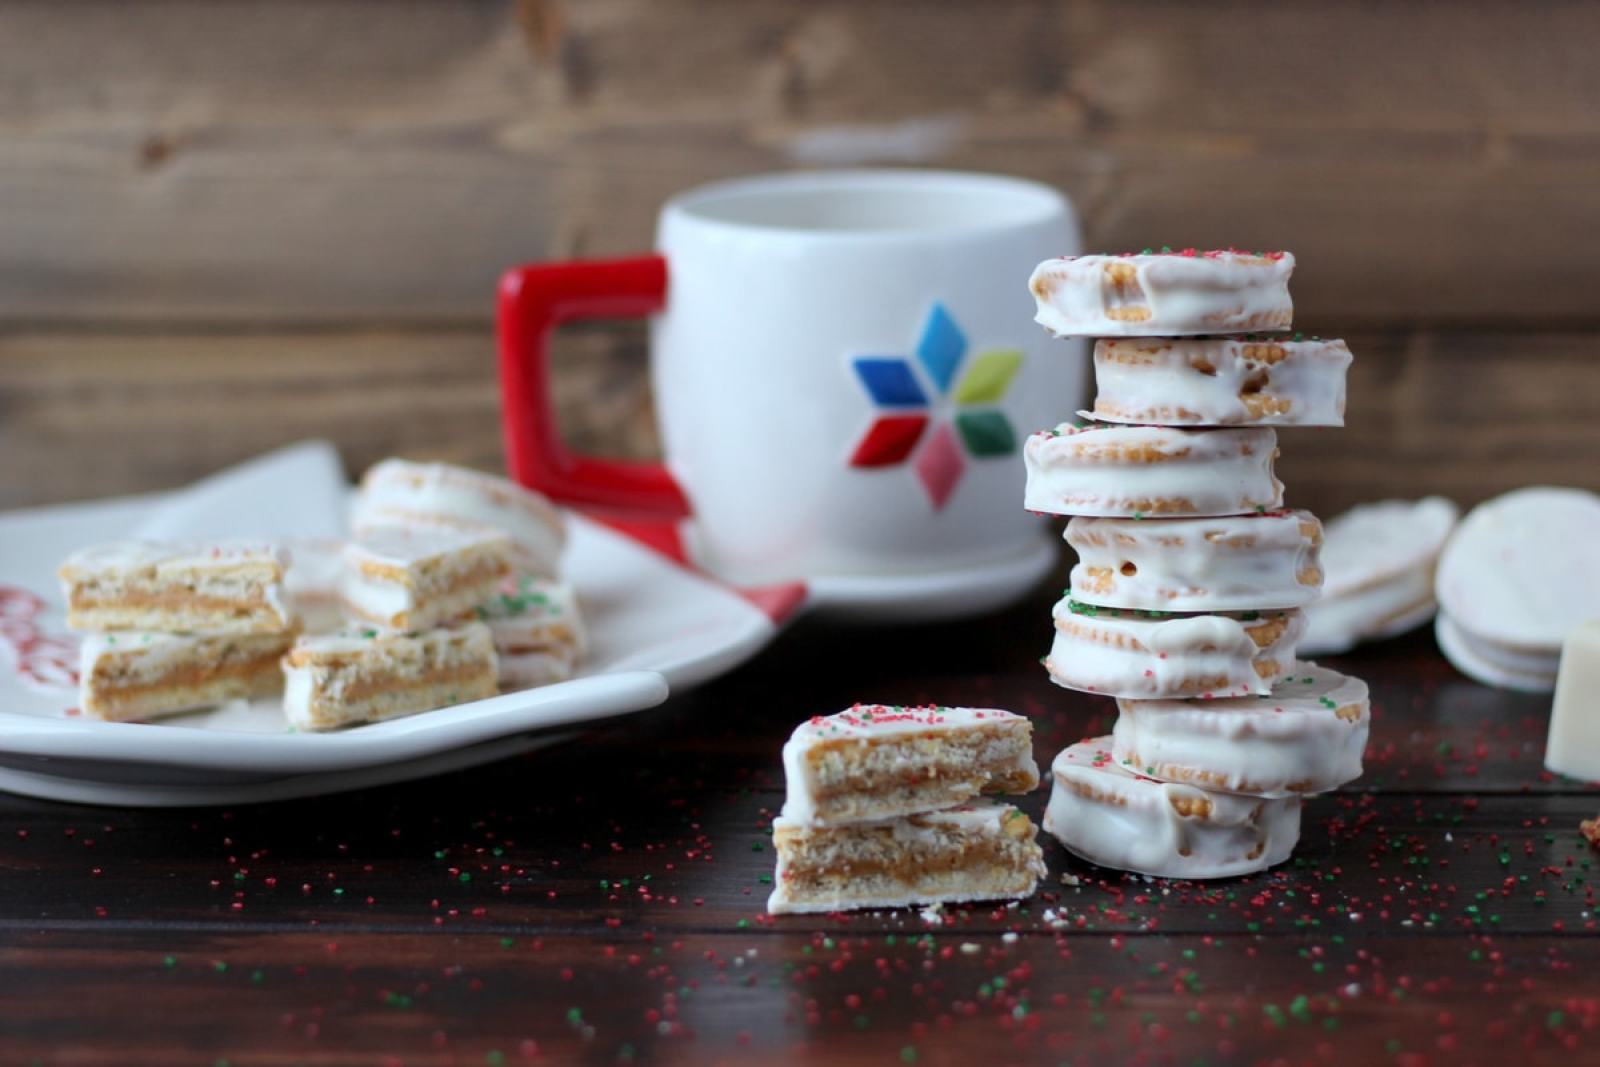 Classic White Chocolate + Peanut Butter Dipped Christmas Cookies - no bake and simple, these cookies will become your new family favorite this holiday season! thewoodenskillet.com #christmas